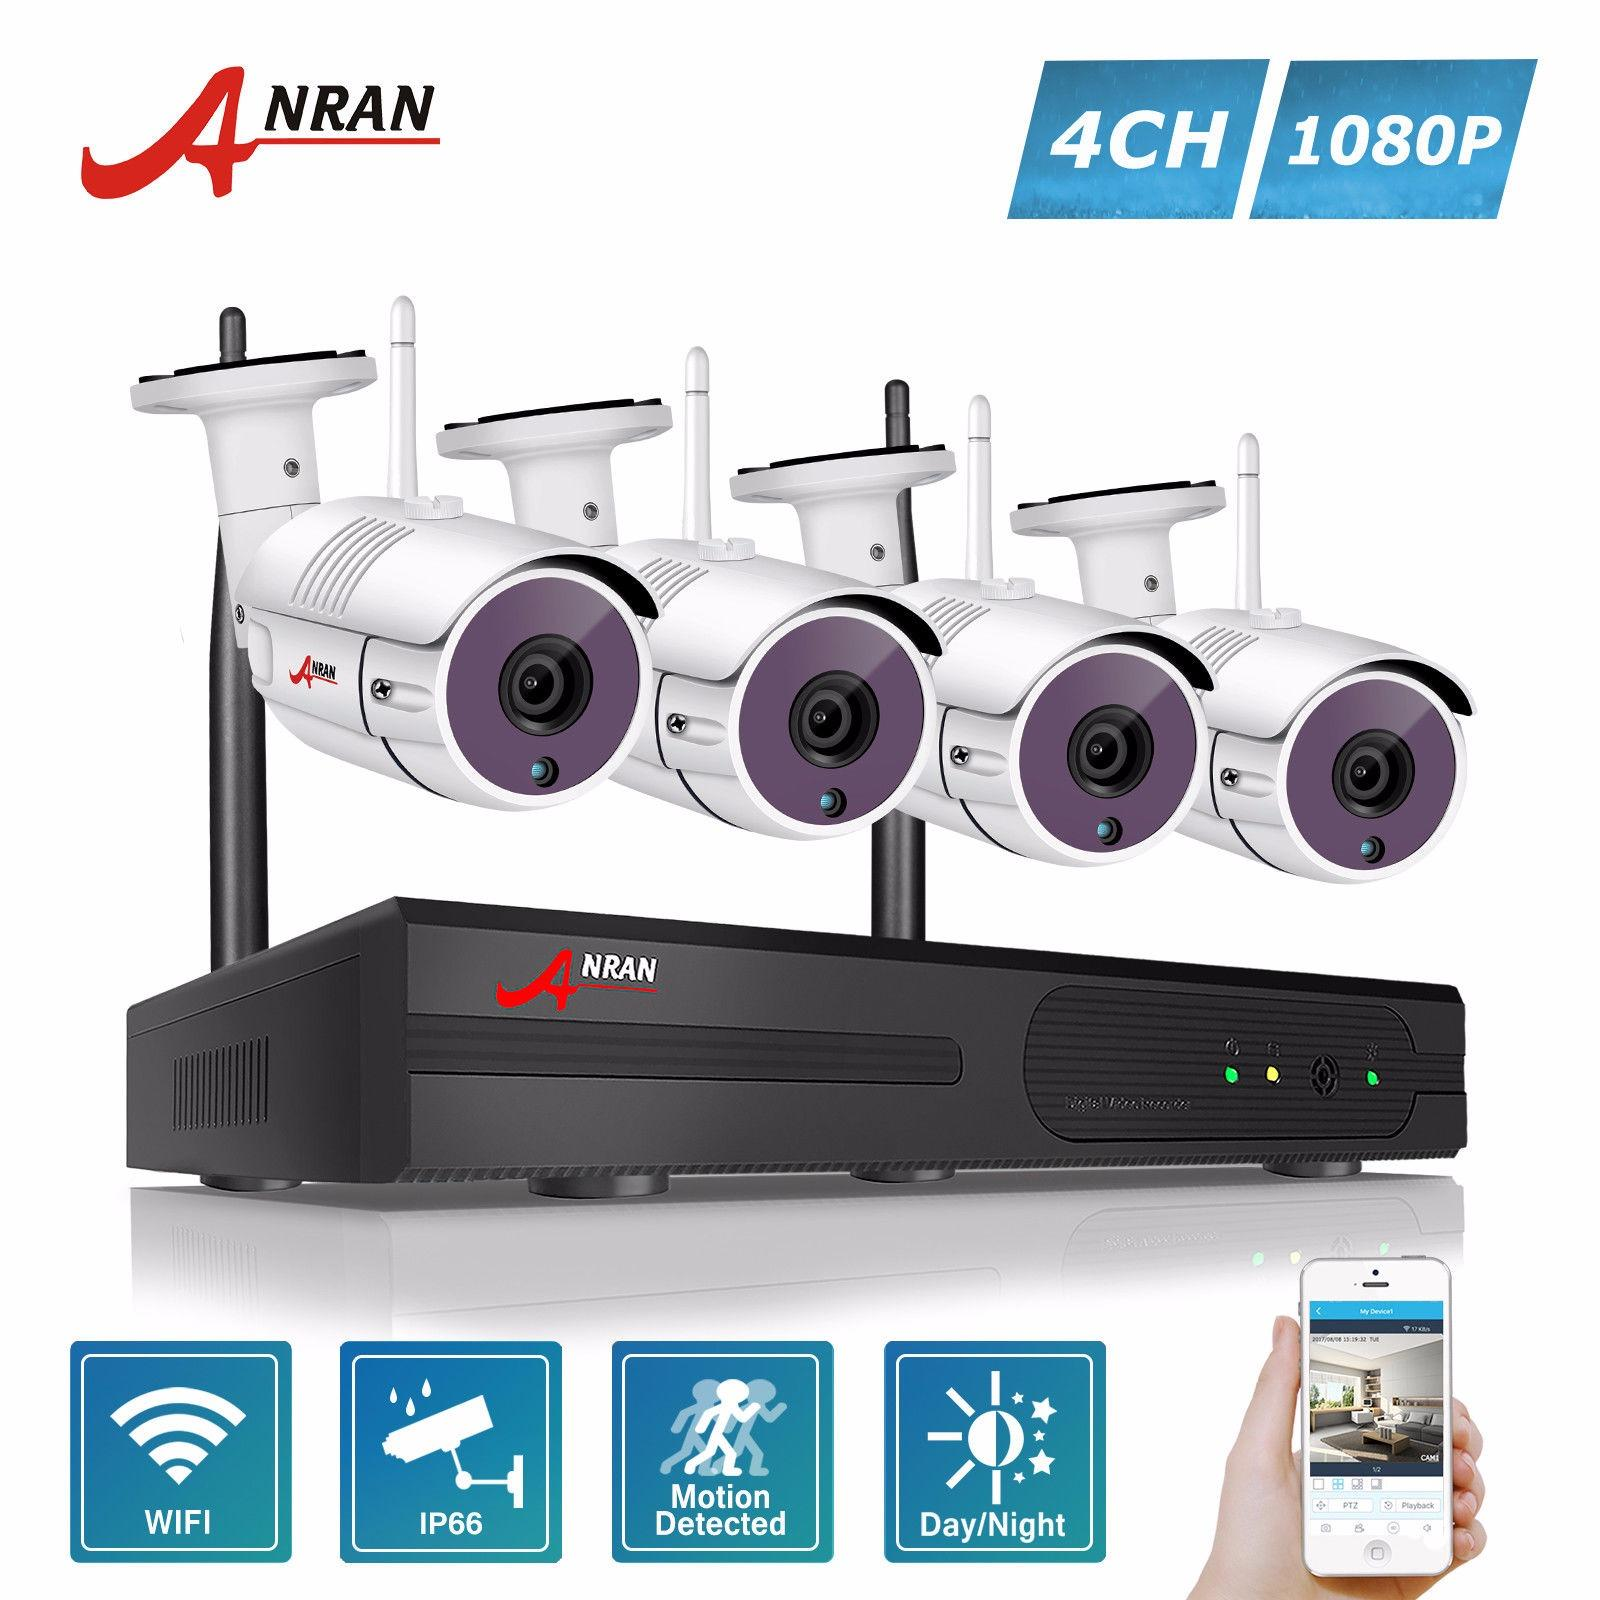 Coupon Anran 4Ch Wireless Nvr Security Cctv System P2P 1080P Hd Outdoor Vandalproof Wfi Ip Camera